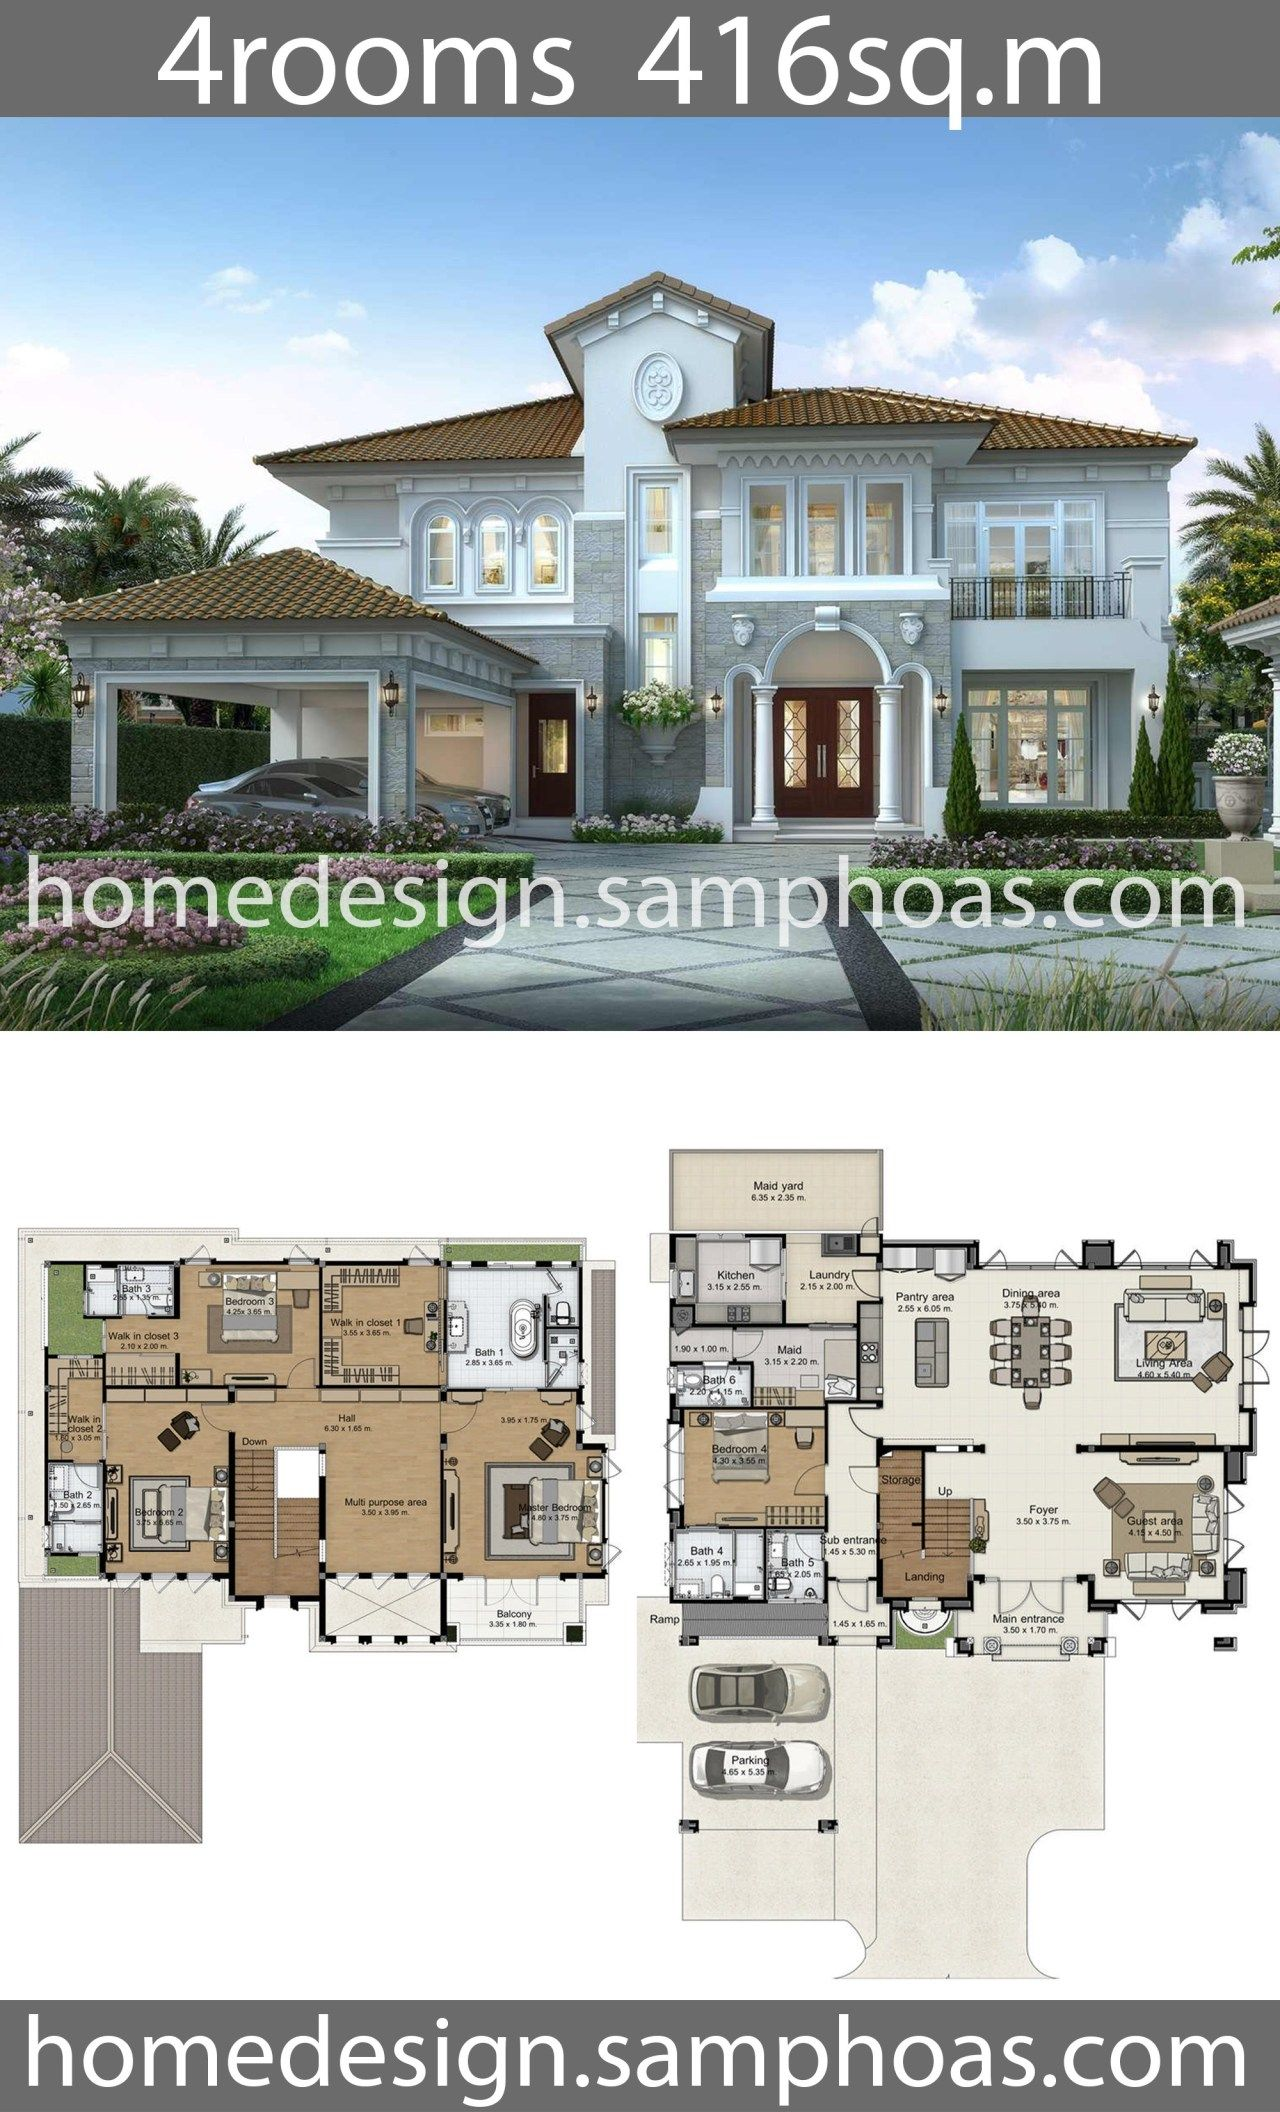 House Design Plans 416sq M With 4 Bedrooms Home Ideas House Plans Mansion Sims House Plans Model House Plan